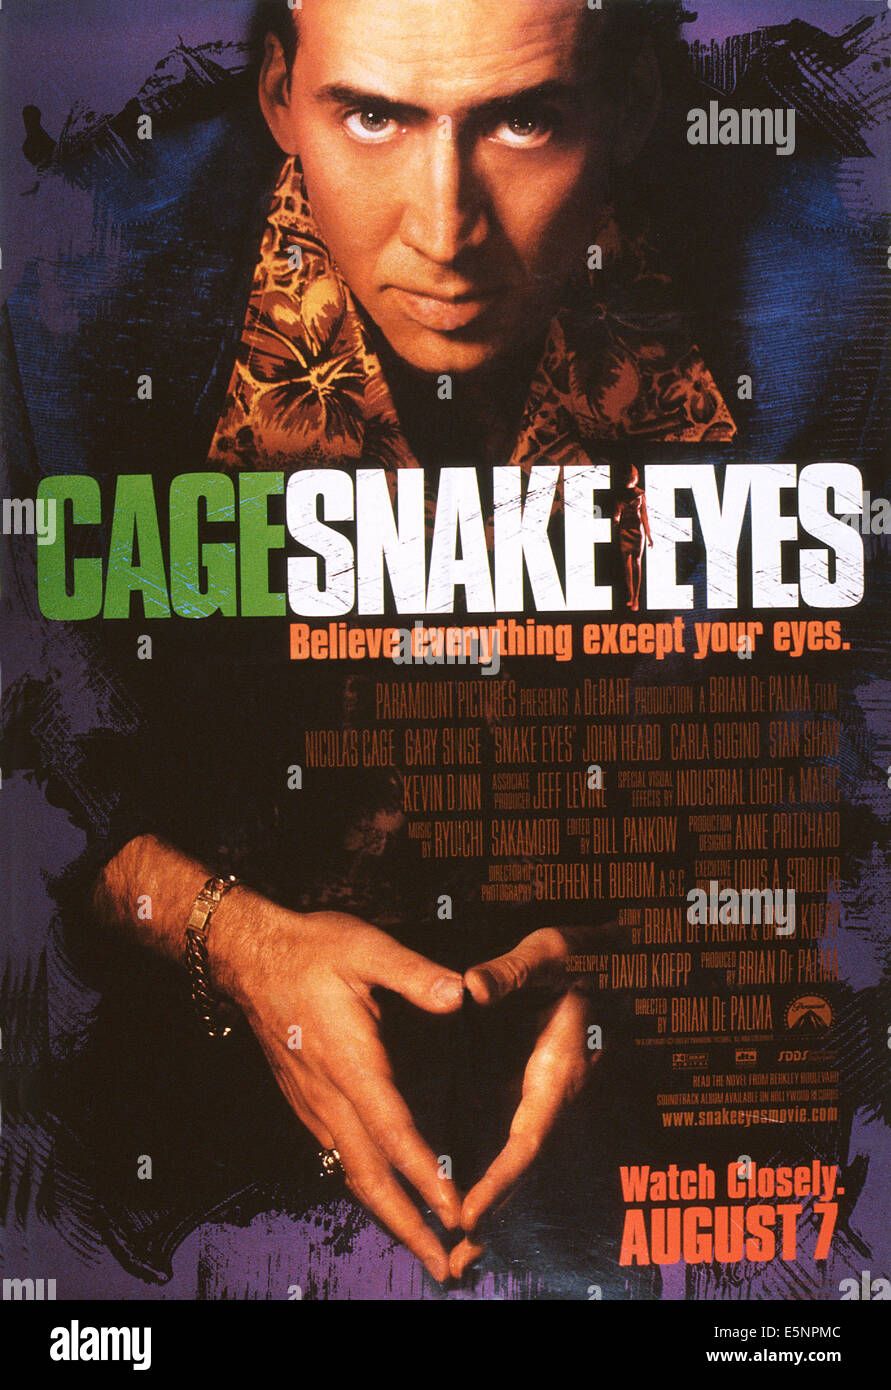 SNAKE EYES, US advance poster art, Nicolas Cage, 1998, © Paramount/courtesy Everett Collection - Stock Image